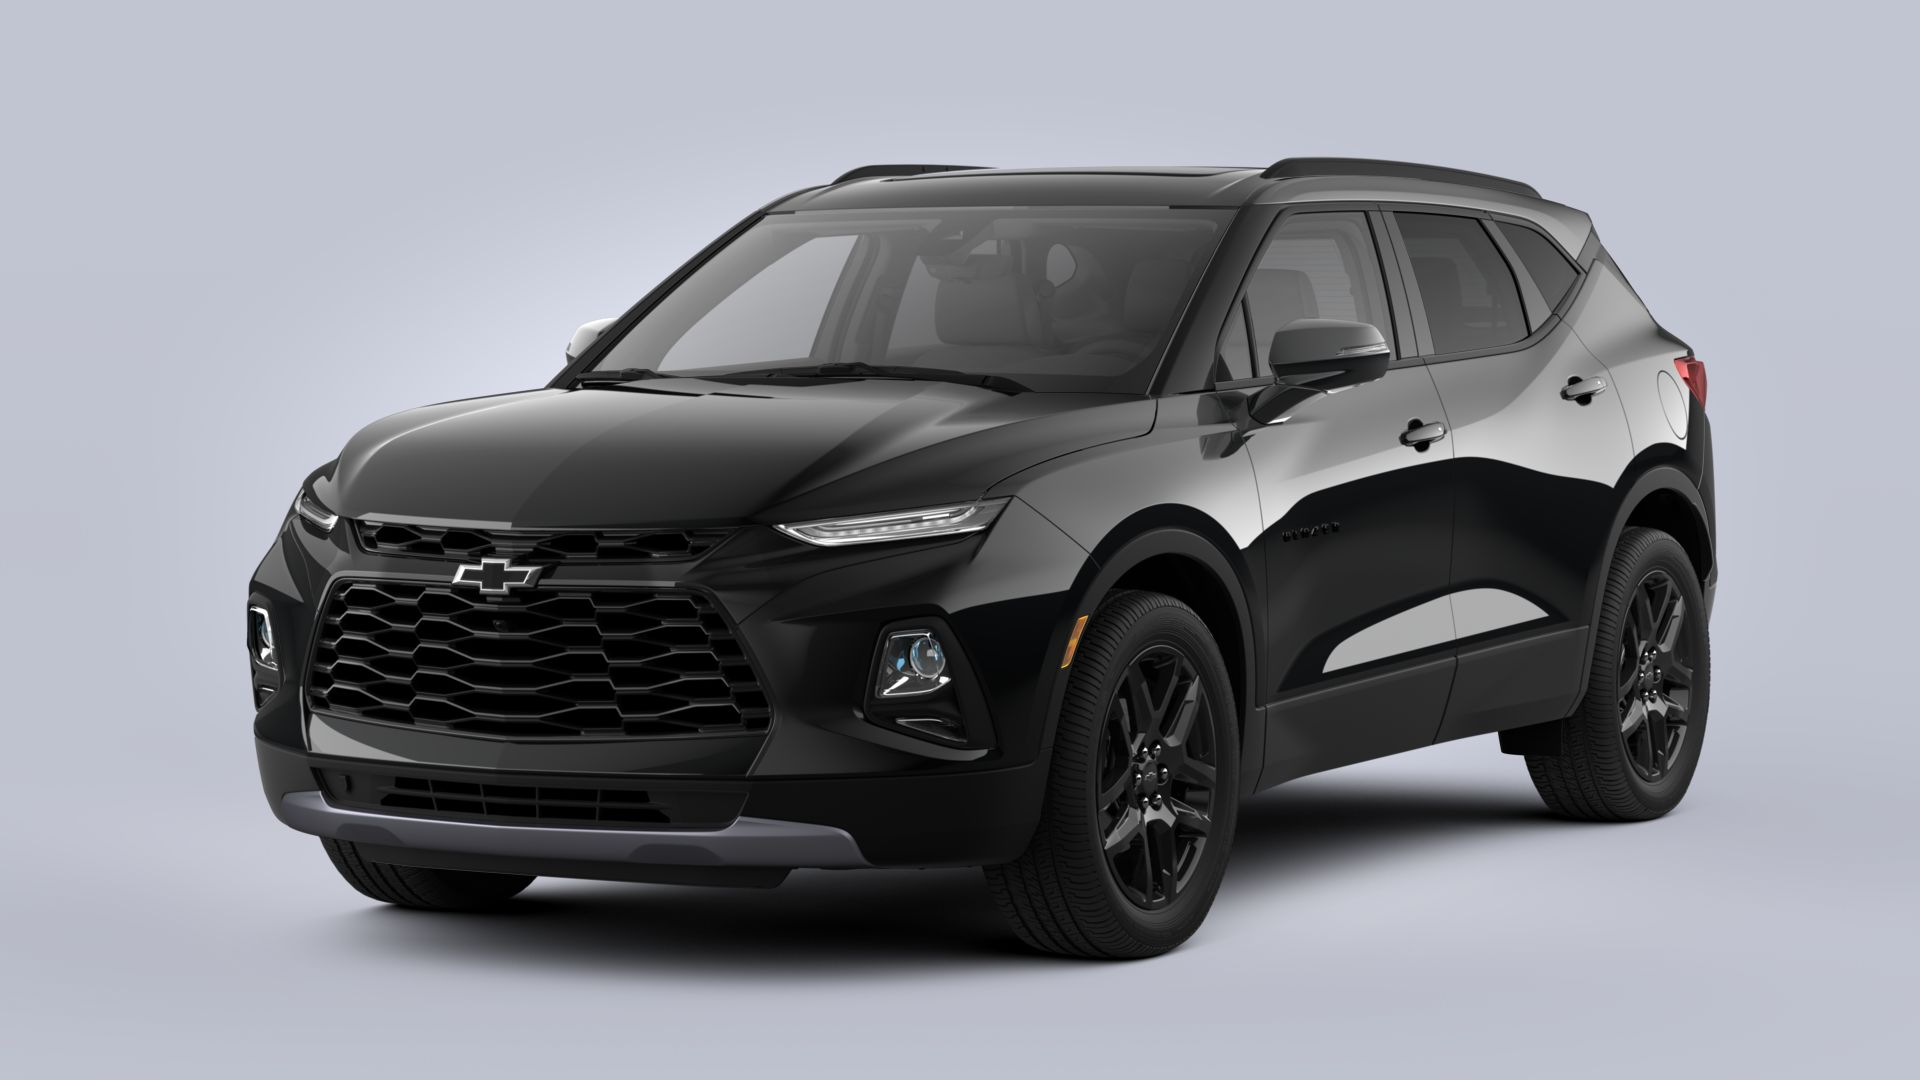 New 2021 Chevrolet Blazer 3LT FRONT WHEEL DRIVE SUV